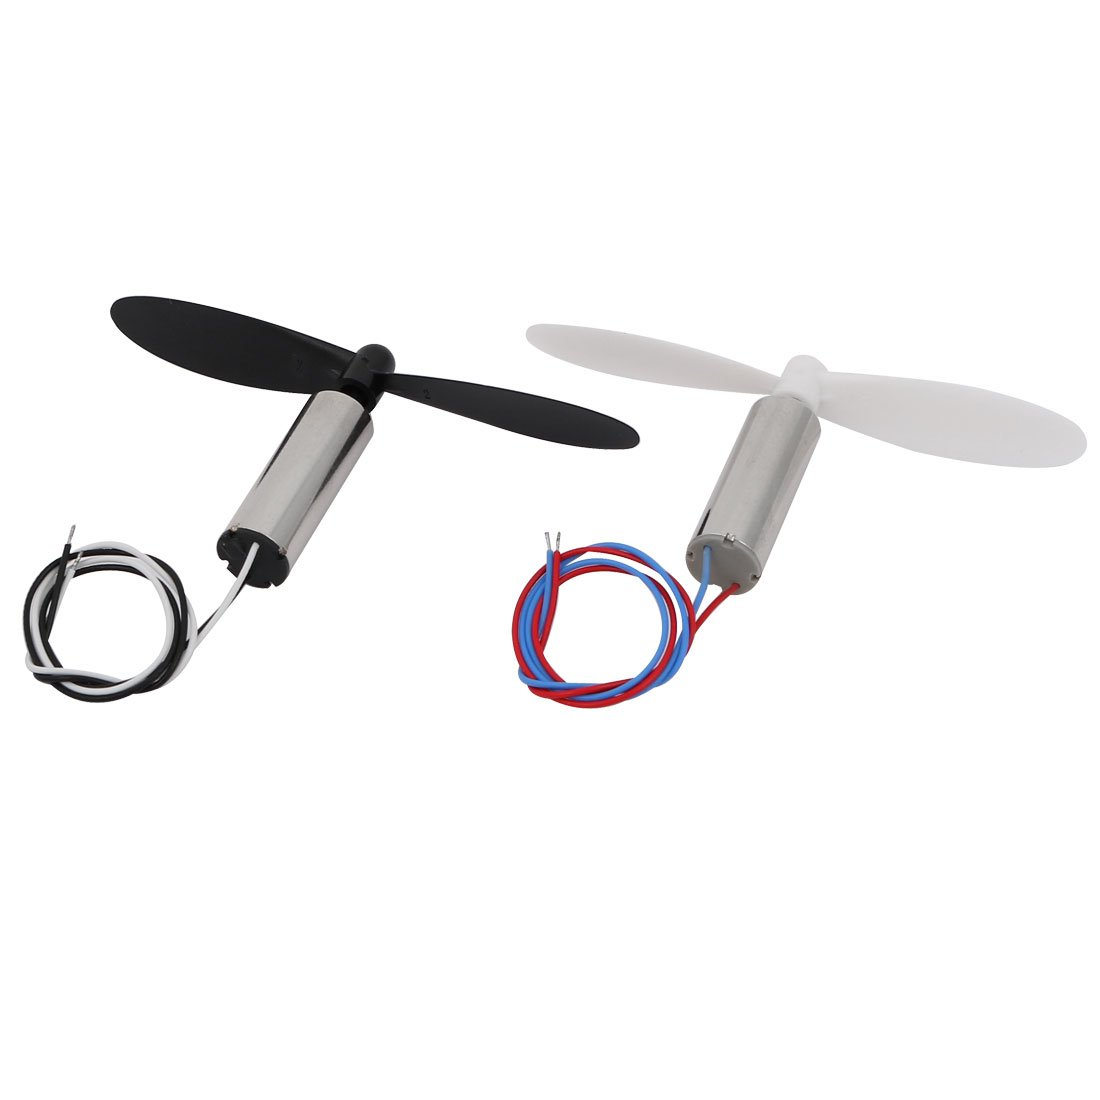 uxcell 2pair DC3.7V 27000RPM Clockwise Anti-clockwise 7mm x 20mm Hollow Cup Motor w Propeller by uxcell (Image #3)